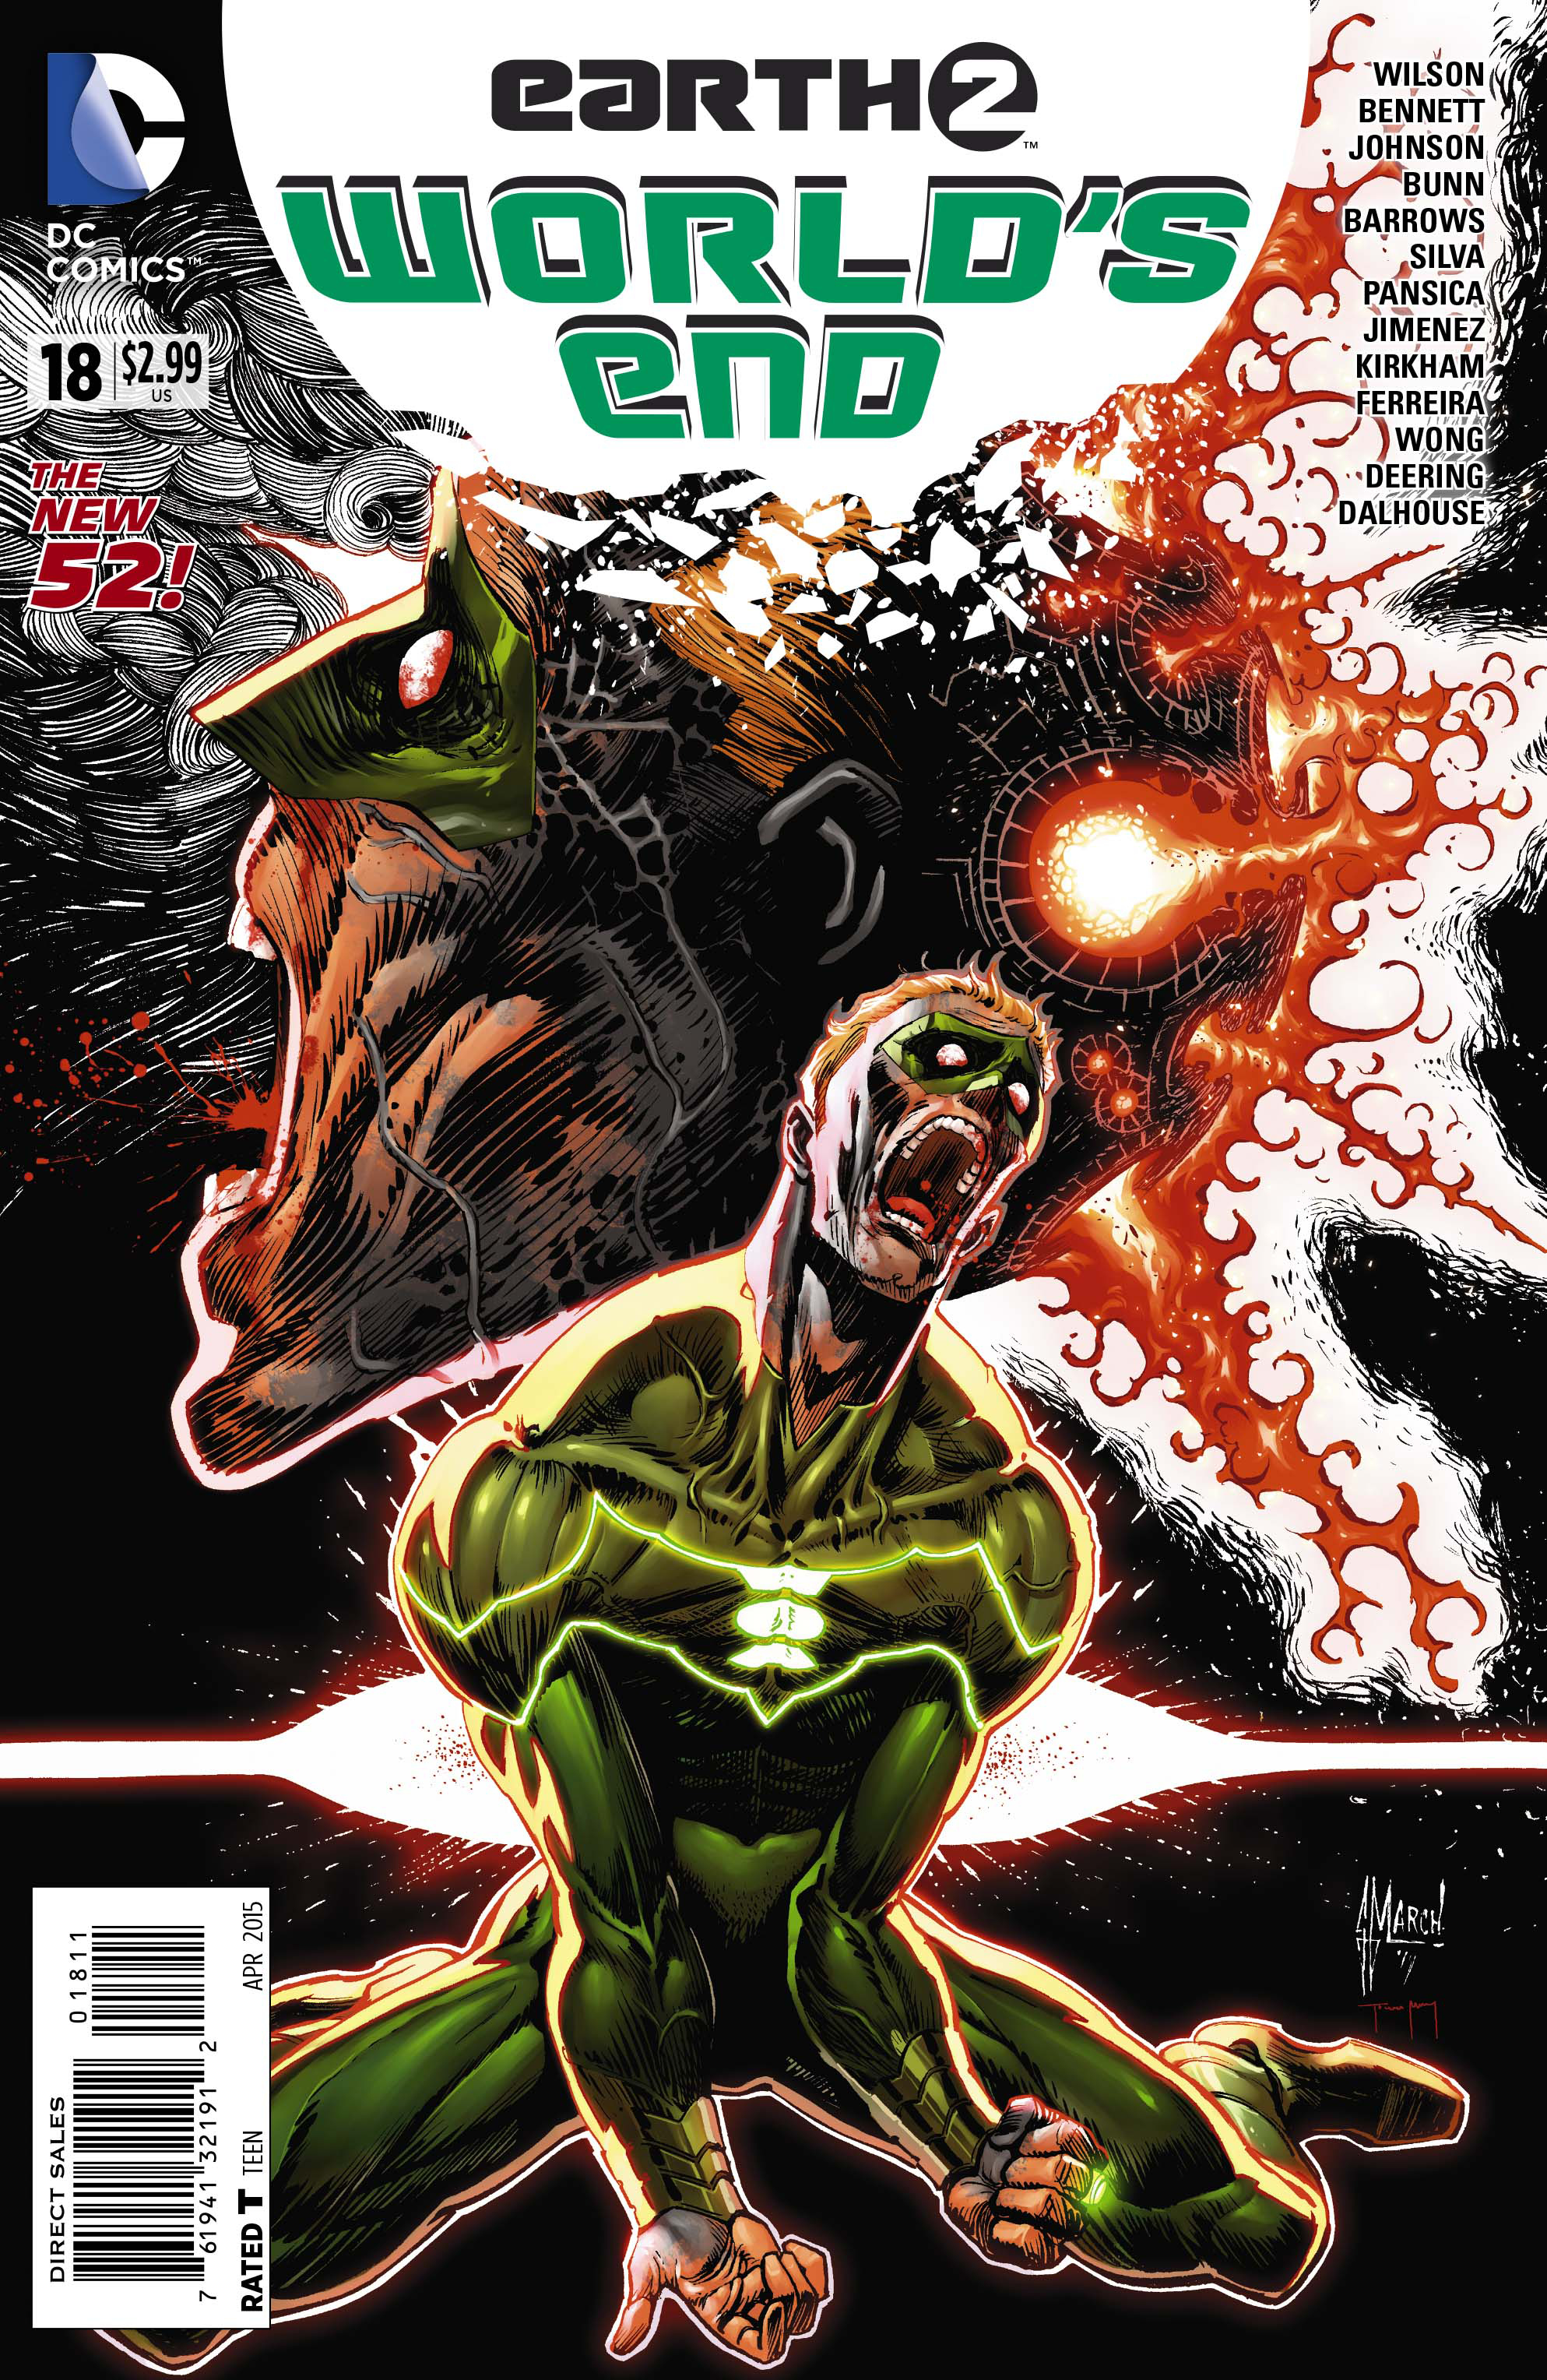 EARTH 2 WORLDS END #18